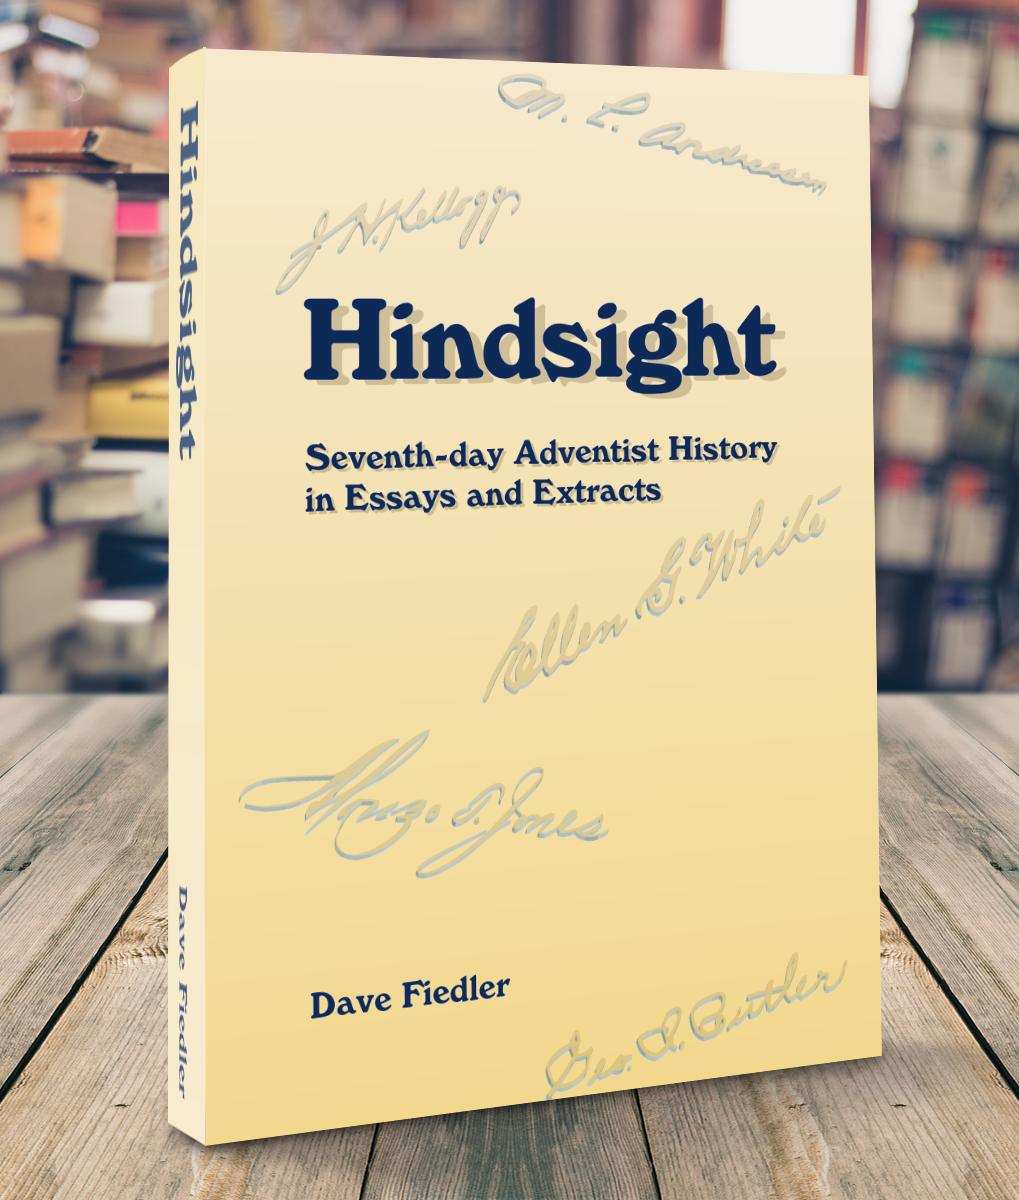 Hindsight: Seventh-day Adventist History in Essays and Extracts PDF